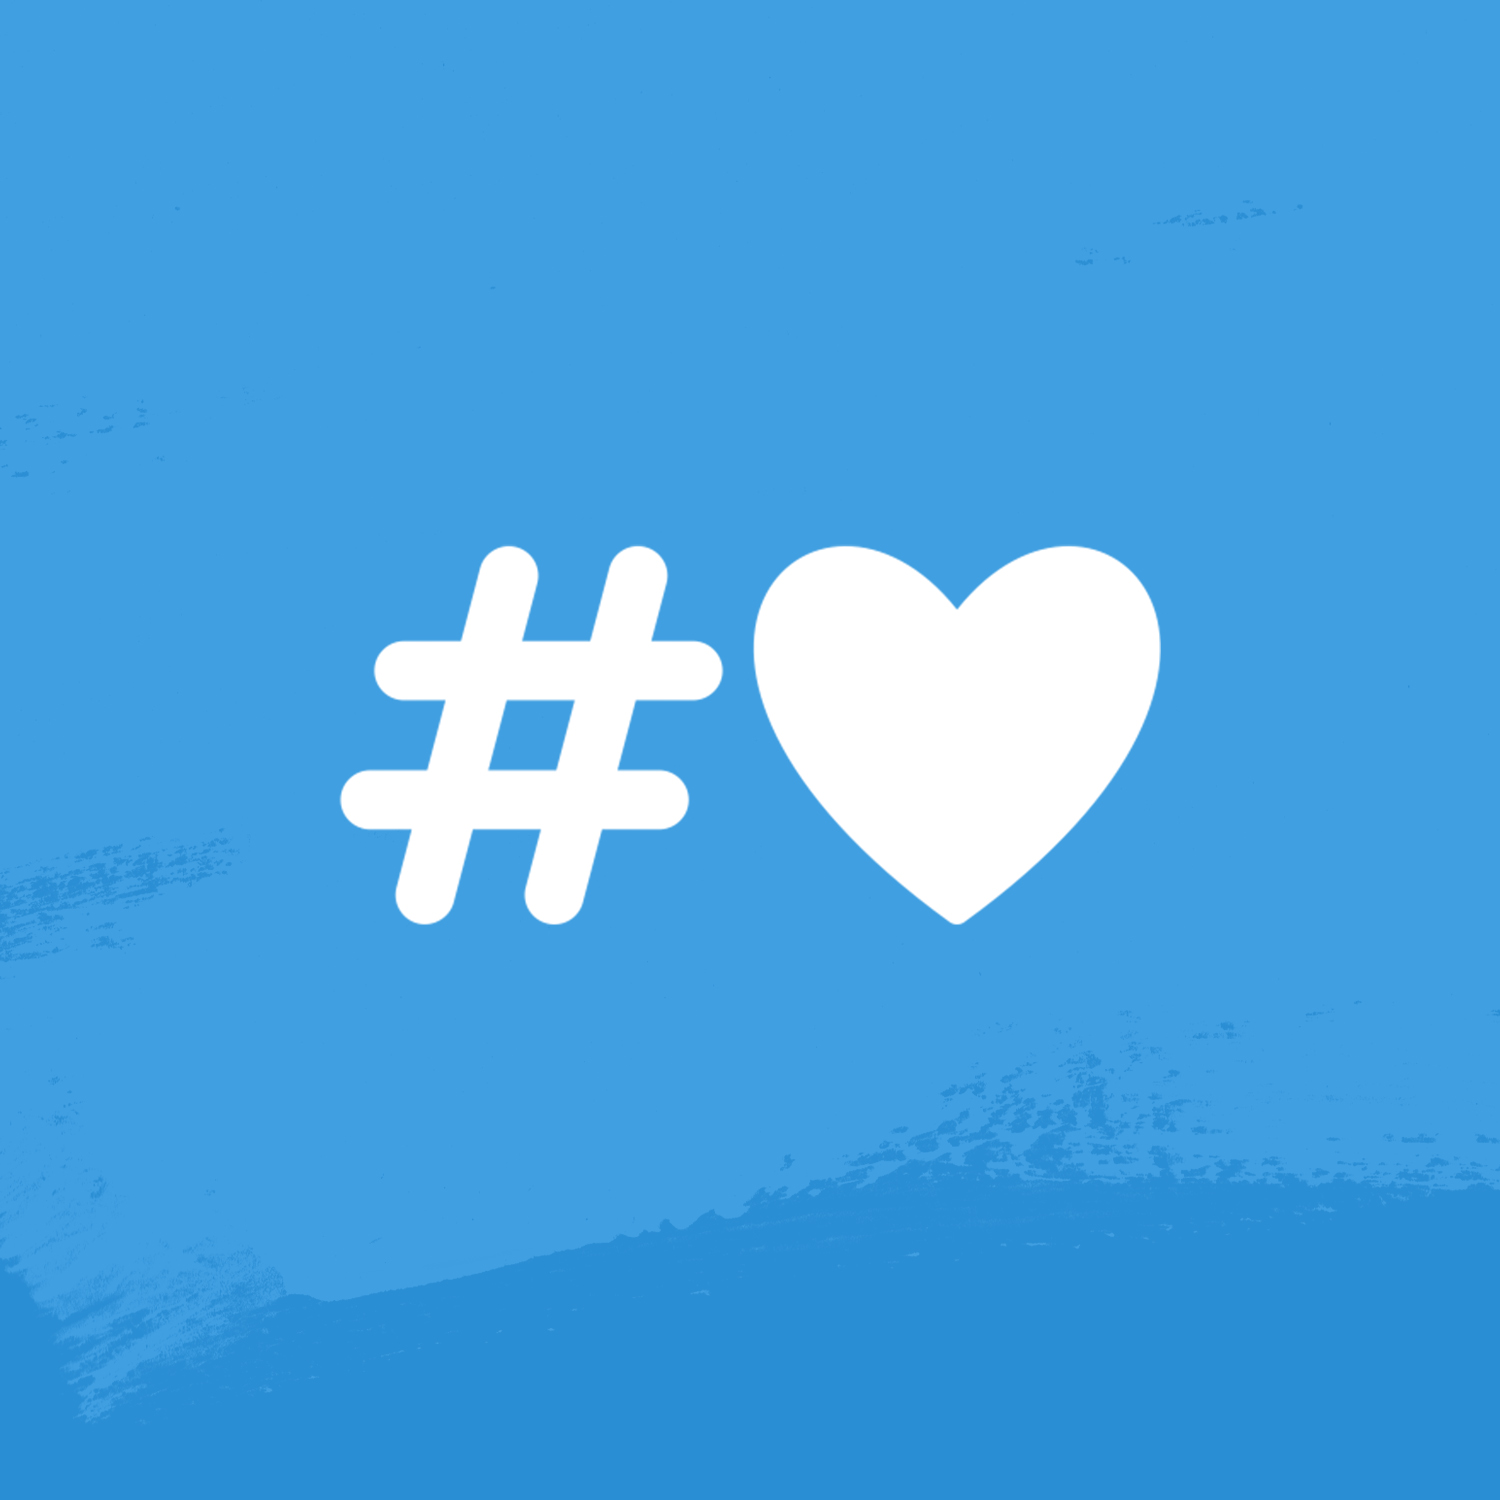 Hashtag and heart on a blue background